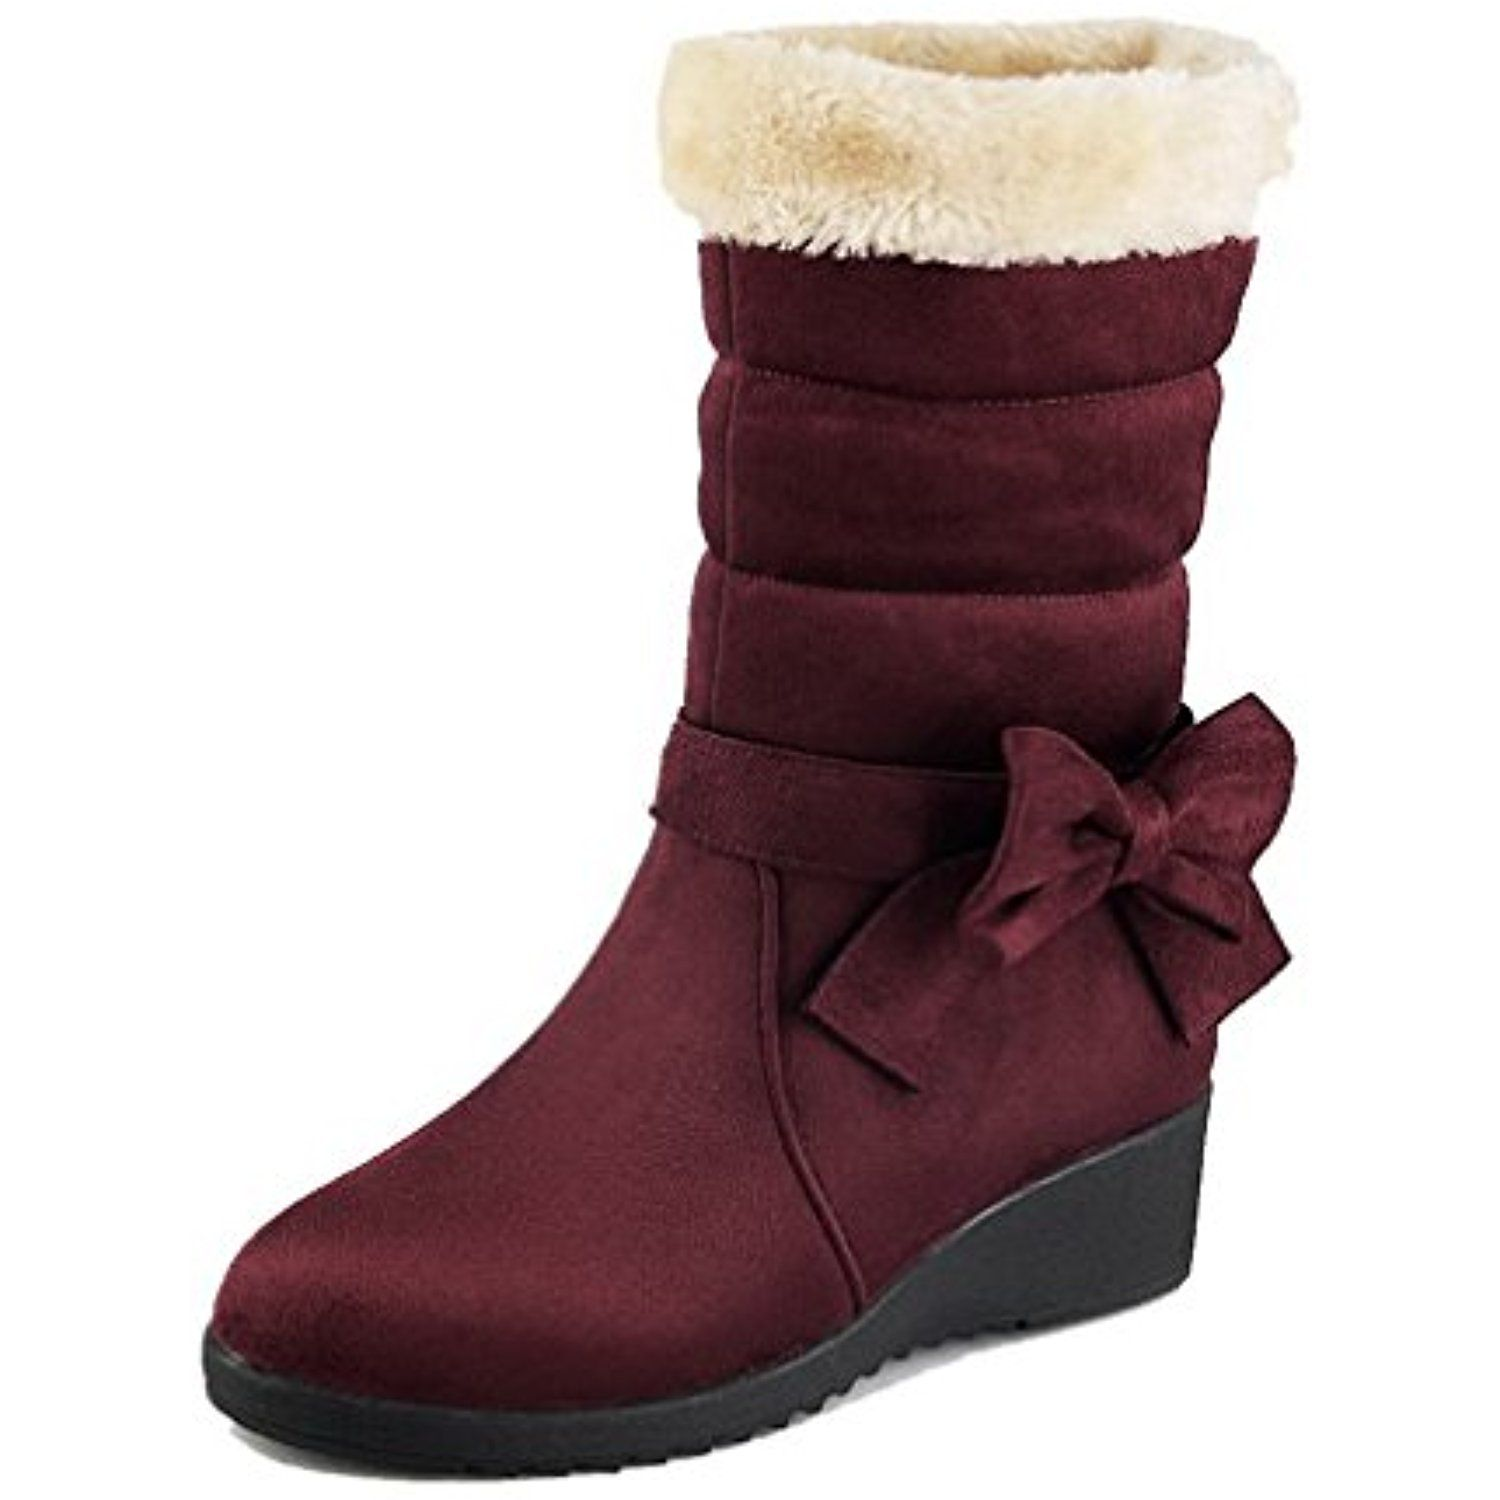 Women's Frosted Round Closed Toe Solid Low Top Kitten Heels Boots